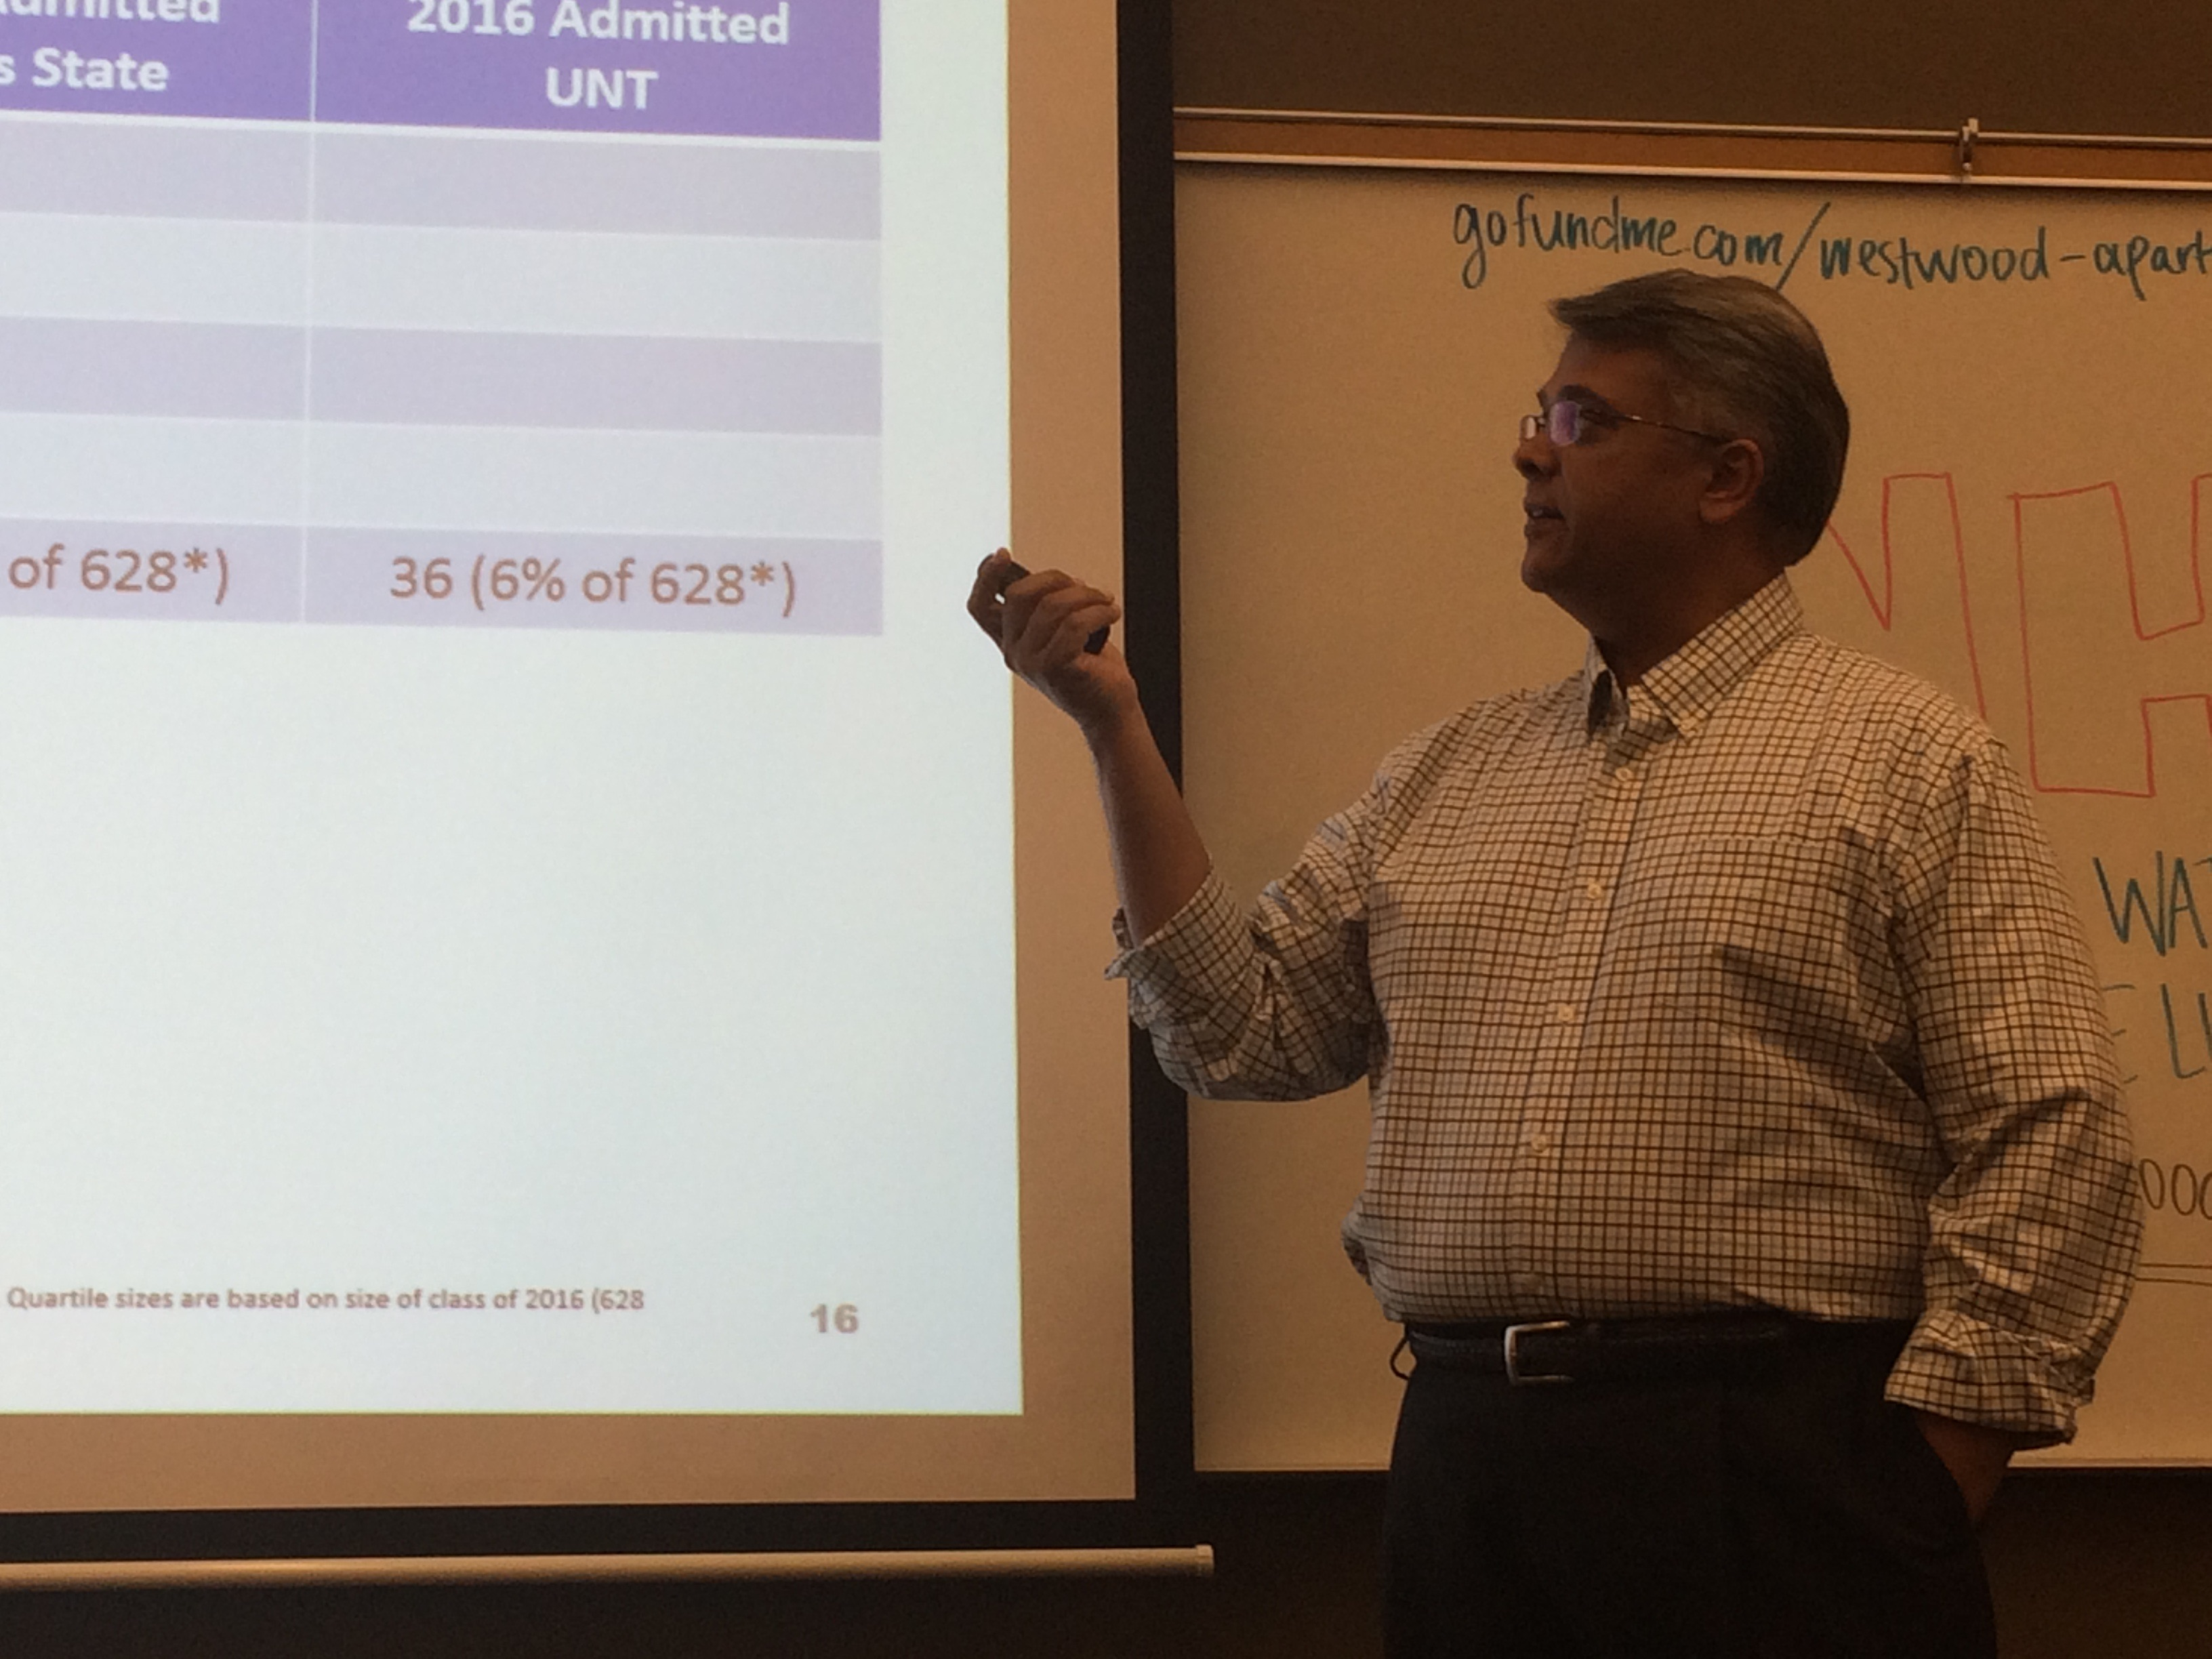 Mr. Hiten Patel presents data supporting the elimination of Rank In Class.